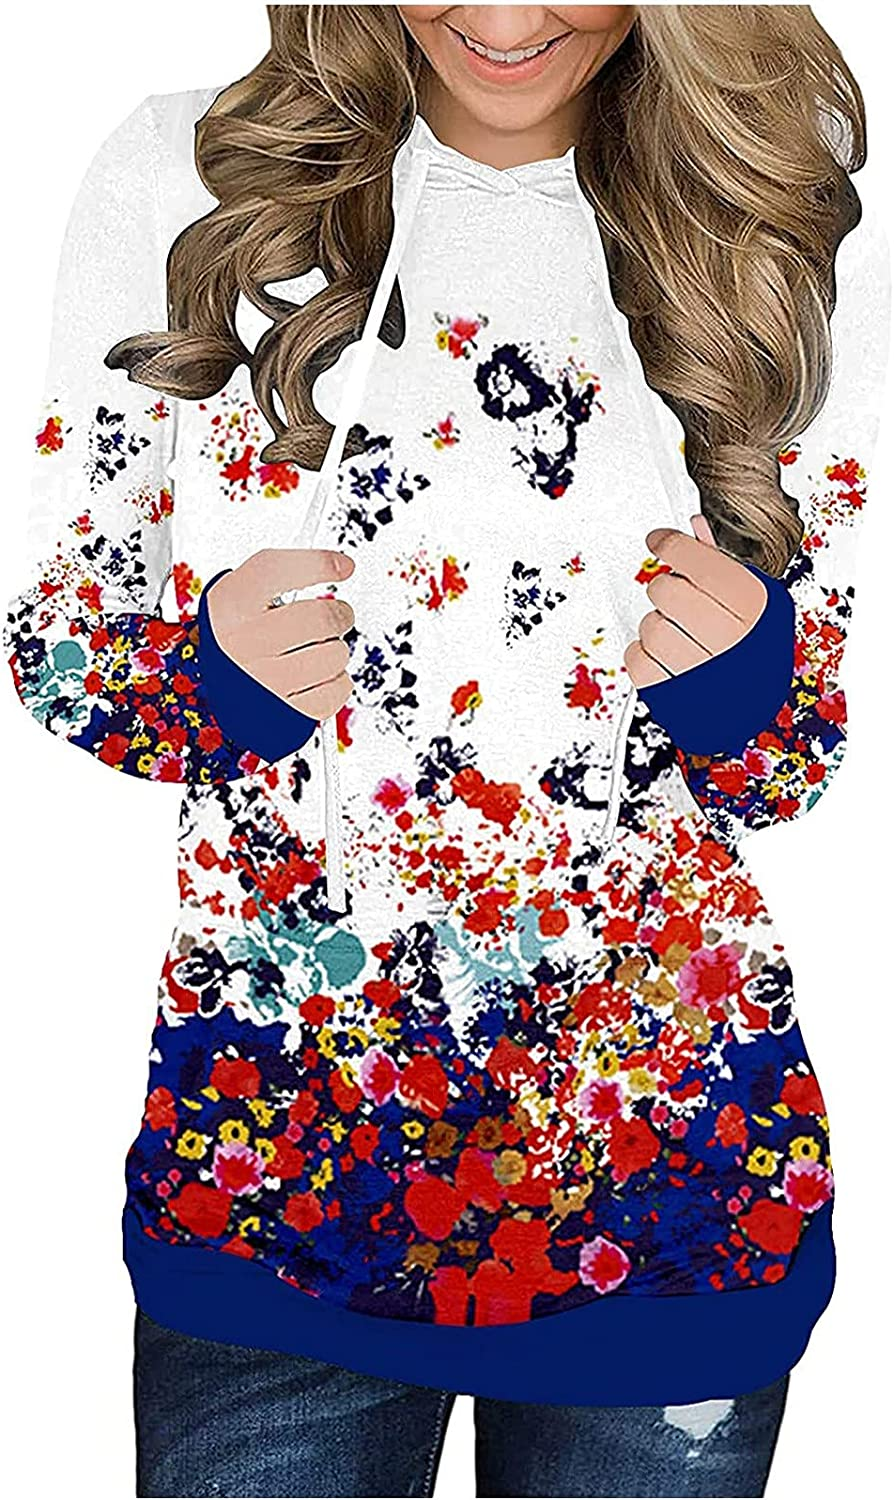 GERsome Women's 3D Graphic Hoodie Shirts Flowers Butterflies Printing Loose Casual Sweatshirt Fashion Long Sleeve Pullover